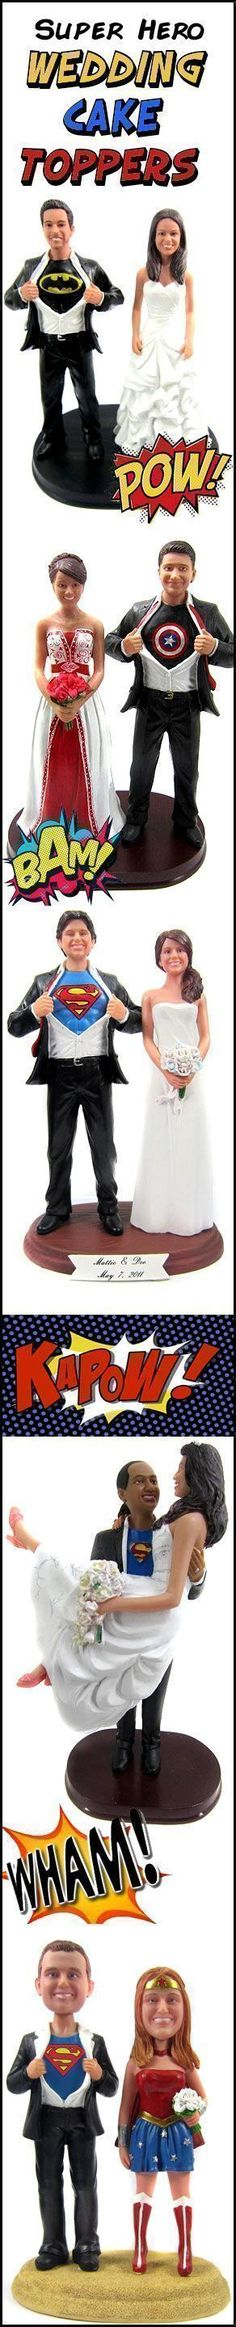 Custom Super Hero Wedding Cake Toppers are sculpted to look like the bride and g - Batman Wedding - Ideas of Batman Wedding - Custom Super Hero Wedding Cake Toppers are sculpted to look like the bride and groom with your choice of hidden identity! Superhero Wedding Cake, Superhero Cake Toppers, Batman Wedding, Comic Wedding, Hockey Wedding, Our Wedding, Dream Wedding, Wedding Stuff, Wedding Things